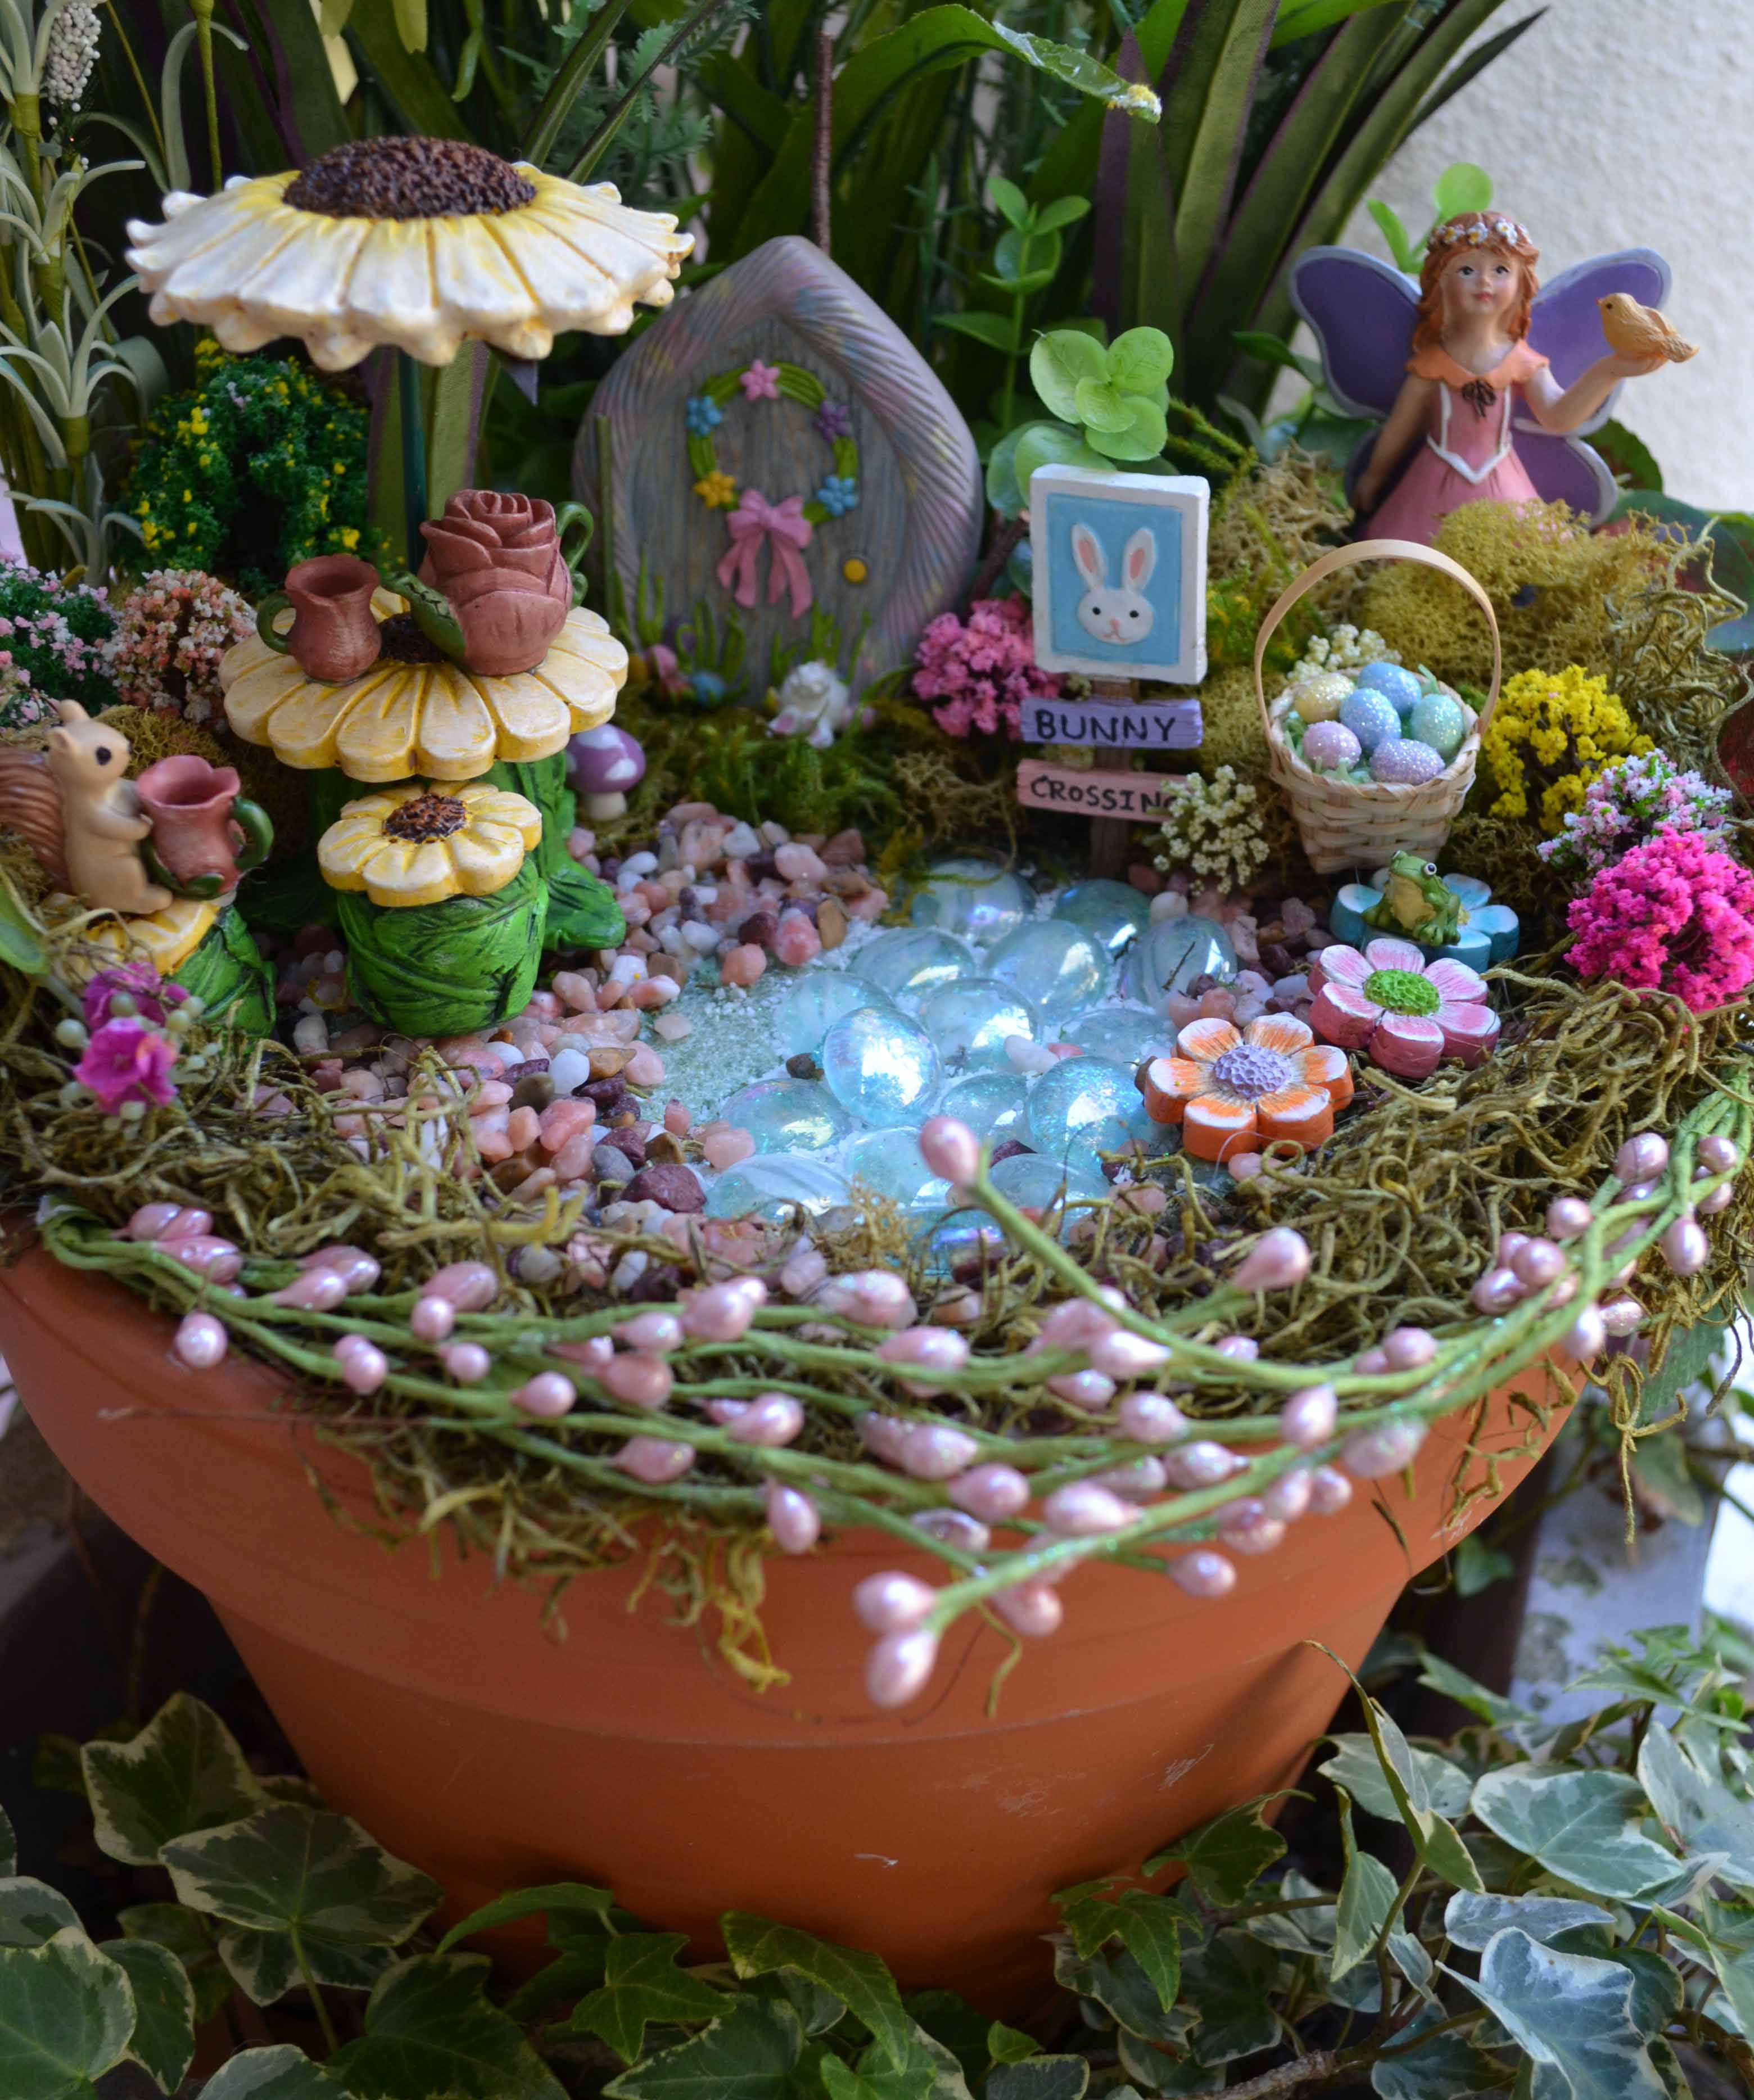 Gorgeous Easter Fairy Garden  Sparrow Innovations With Licious Spring Easter Bunny Fairy Garden Created With Minis From Michaels With Archaic Jade Garden Saffron Walden Also Windsor Castle Gardens In Addition Willows Garden Centre And Gardening Jobs In Hampshire As Well As Garden Storage Containers Additionally Gardeners In Bromley From Sparrowinnovationscom With   Licious Easter Fairy Garden  Sparrow Innovations With Archaic Spring Easter Bunny Fairy Garden Created With Minis From Michaels And Gorgeous Jade Garden Saffron Walden Also Windsor Castle Gardens In Addition Willows Garden Centre From Sparrowinnovationscom